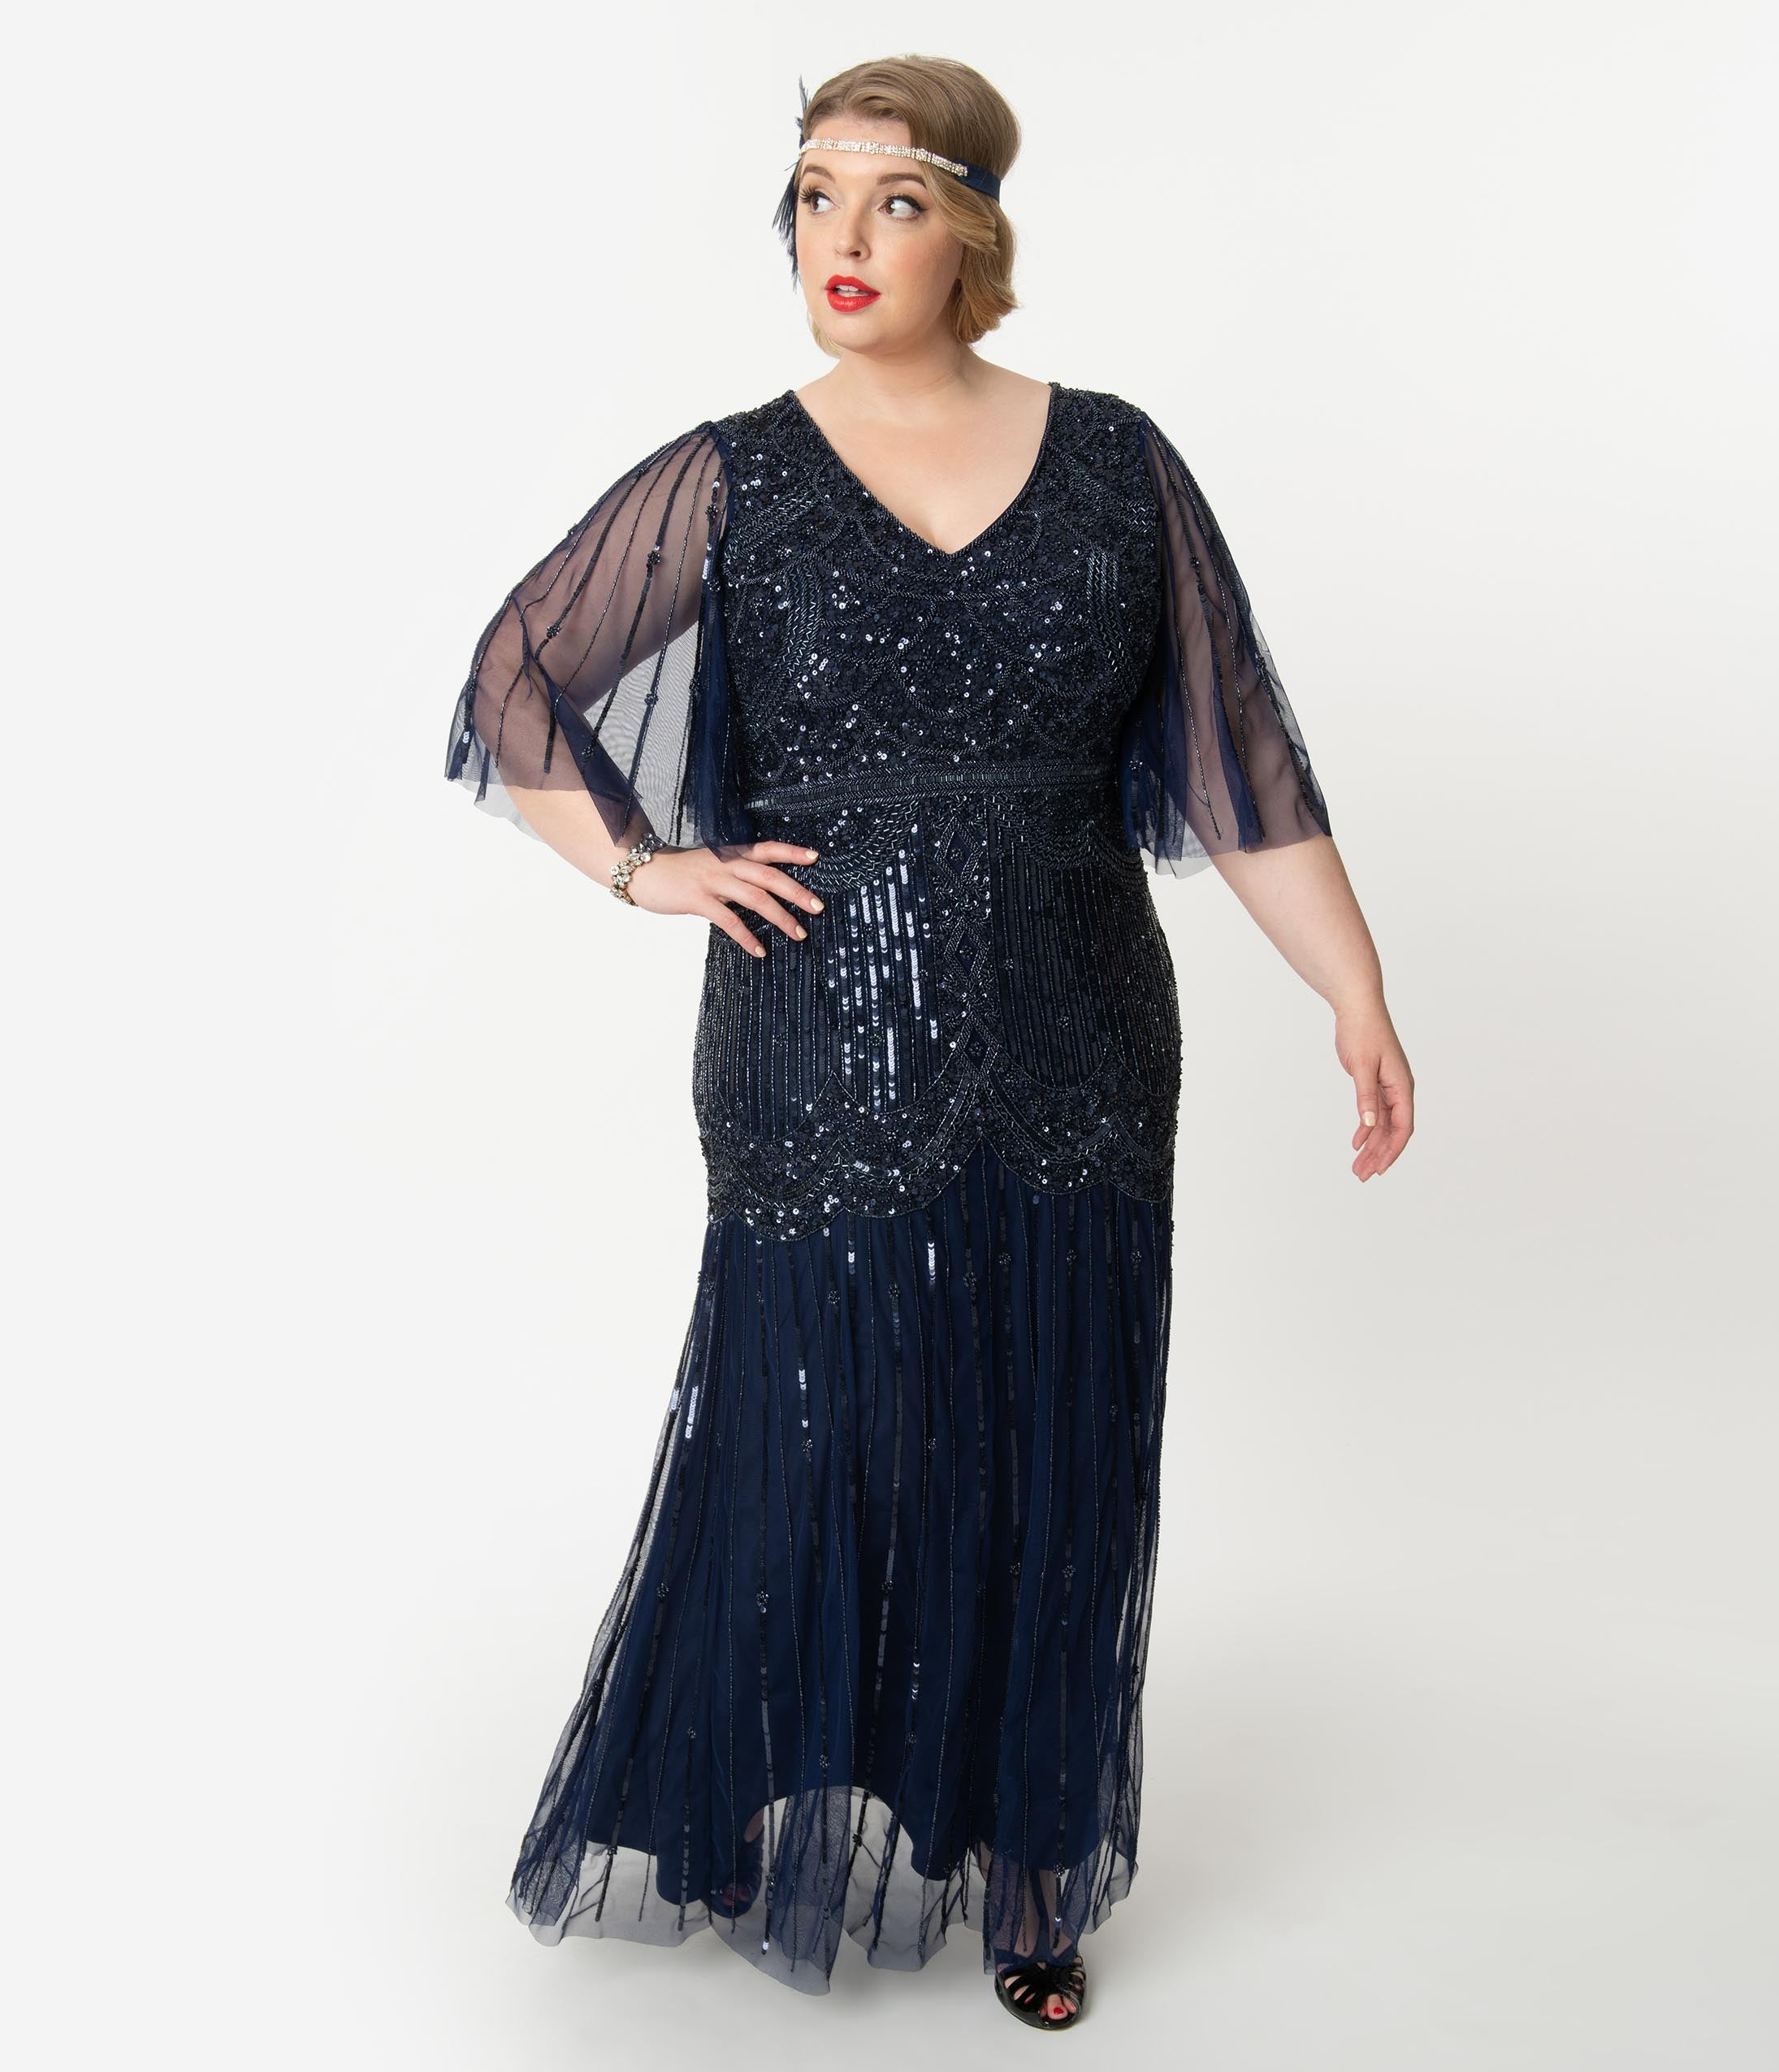 1920s Evening Dresses & Formal Gowns Plus Size Navy Blue Sequin  Beaded Angel Sleeve Bettina Long Flapper Dress $268.00 AT vintagedancer.com